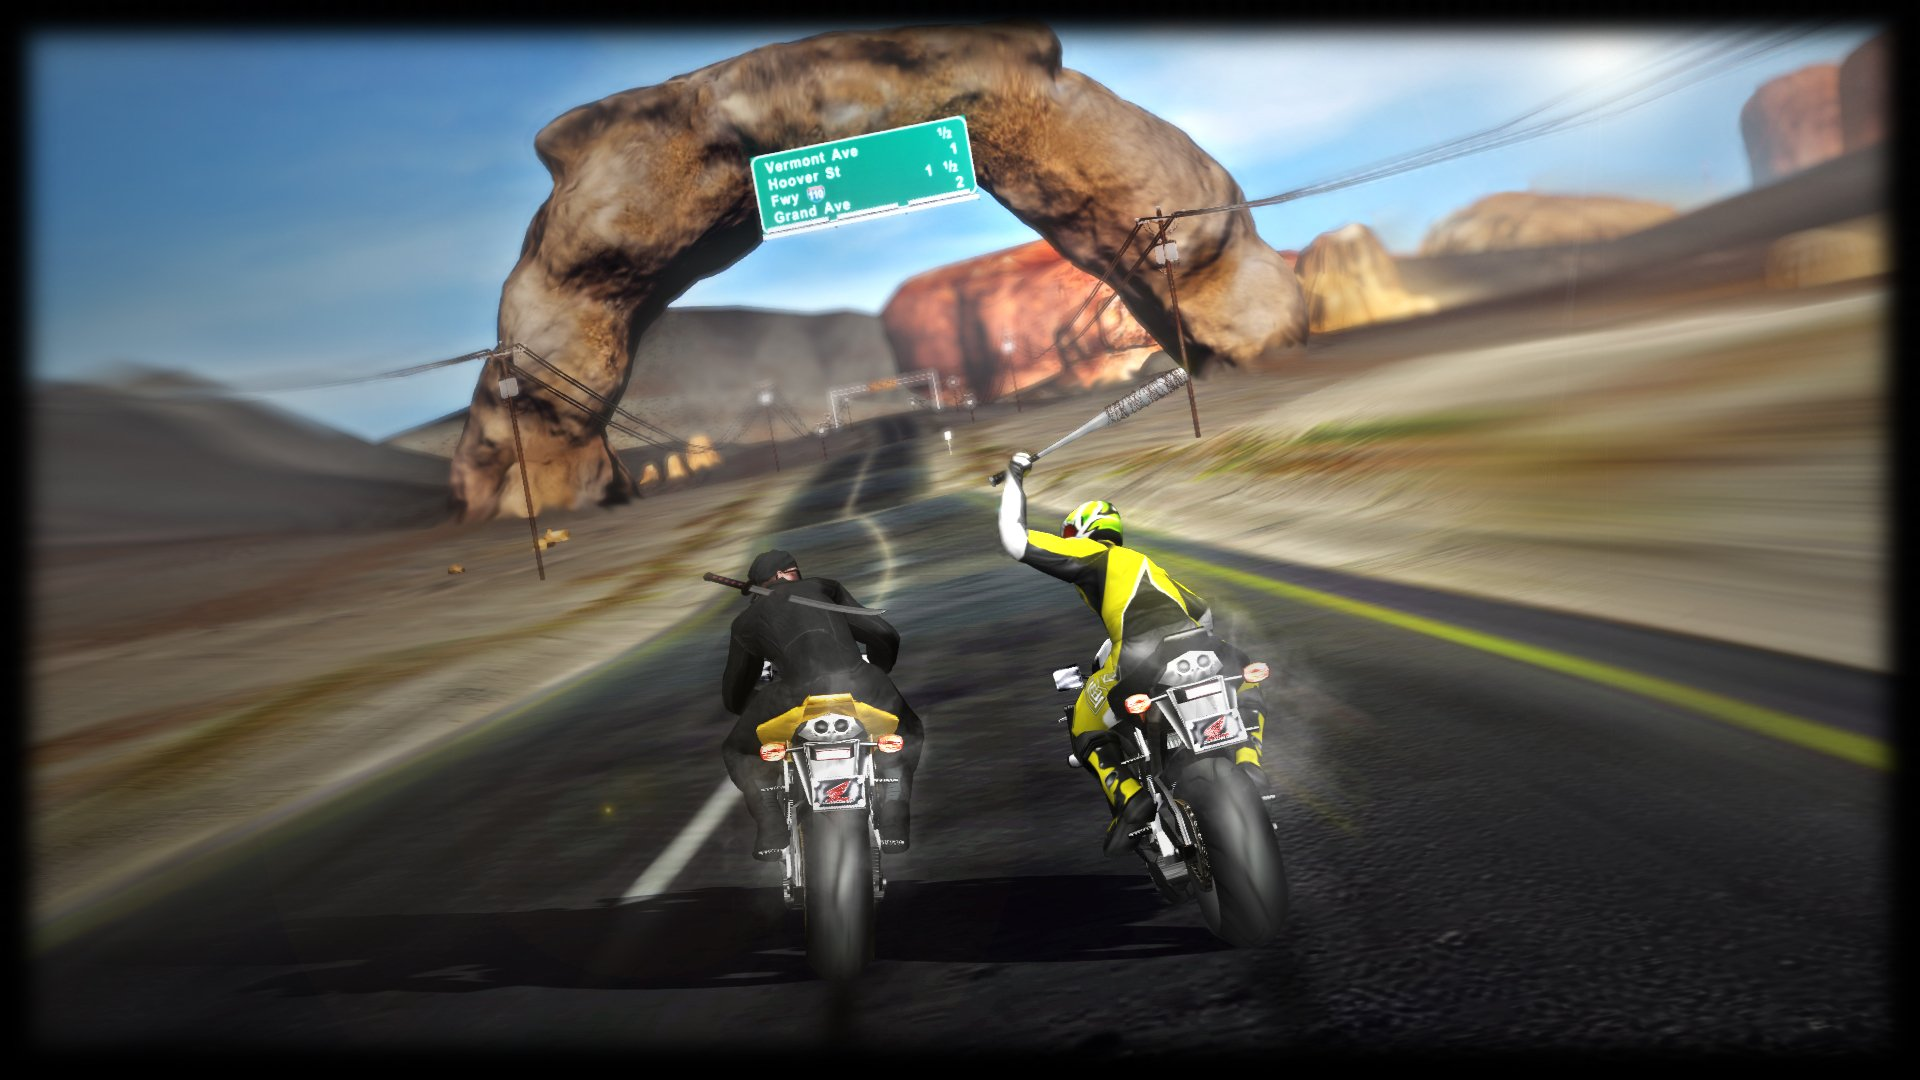 3 road redemption hd wallpapers background images wallpaper abyss hd wallpaper background image id628548 1920x1080 video game road redemption voltagebd Image collections